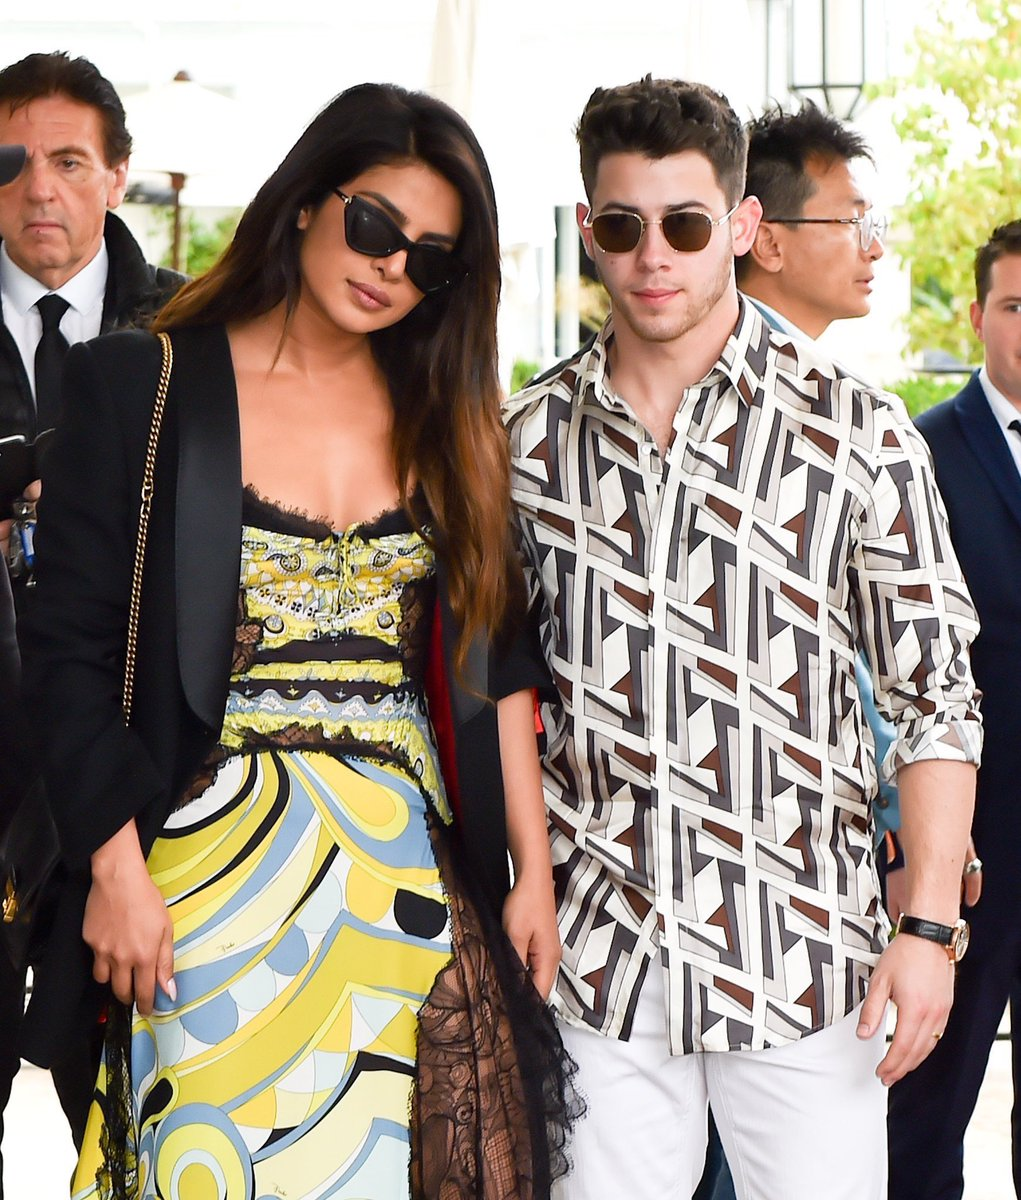 Cannes 2019: All of Priyanka Chopra, Nick Jonas looks on the red carpet result in serious fashion goals